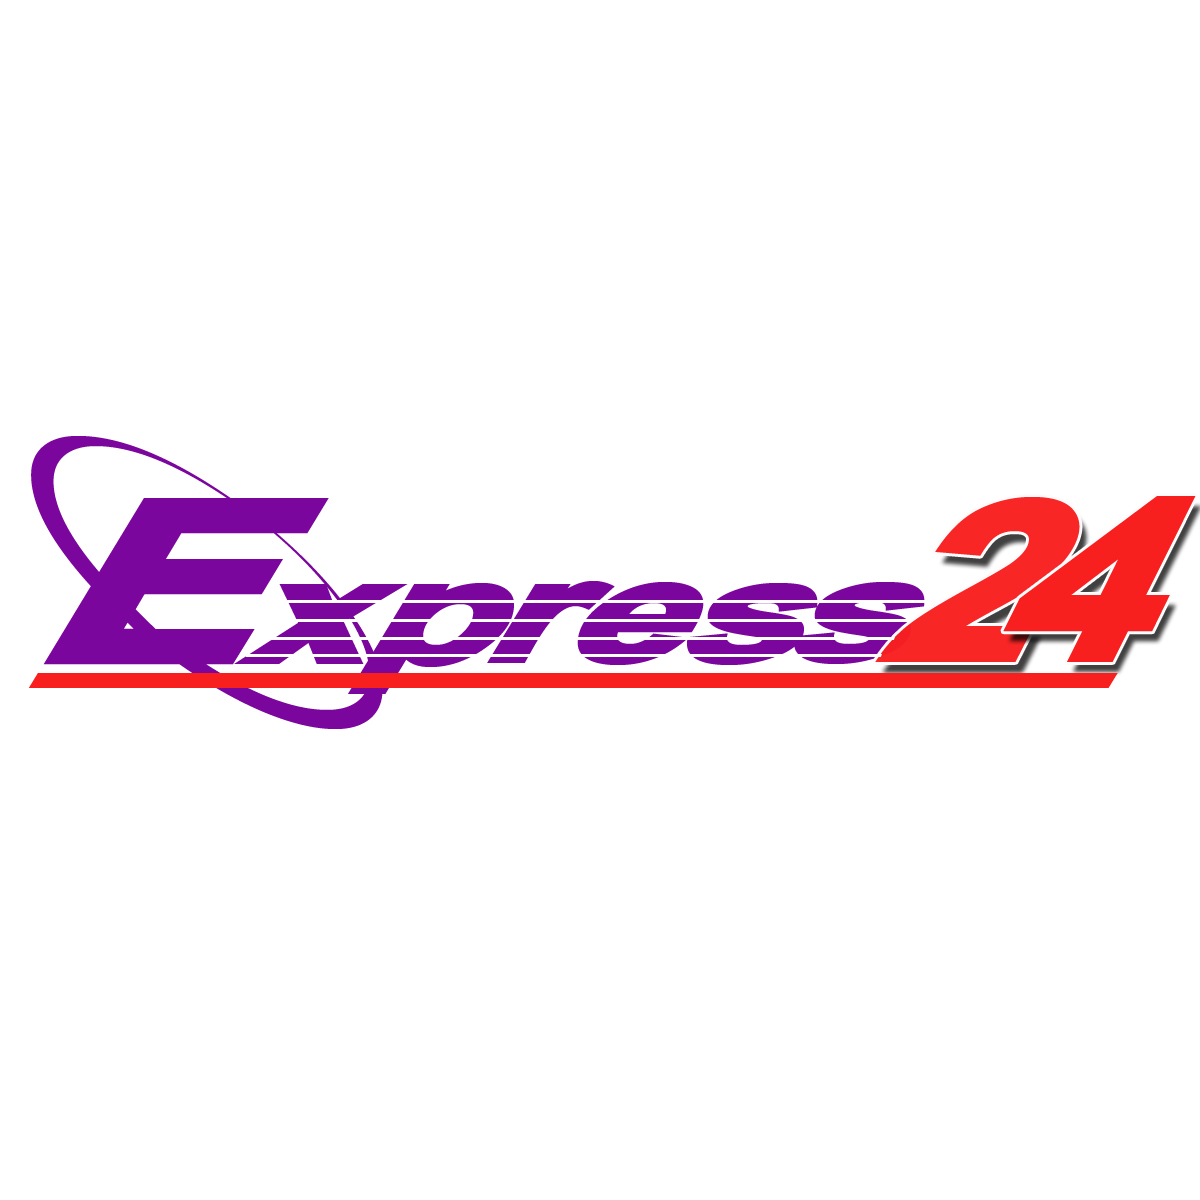 Express24 Moving Services